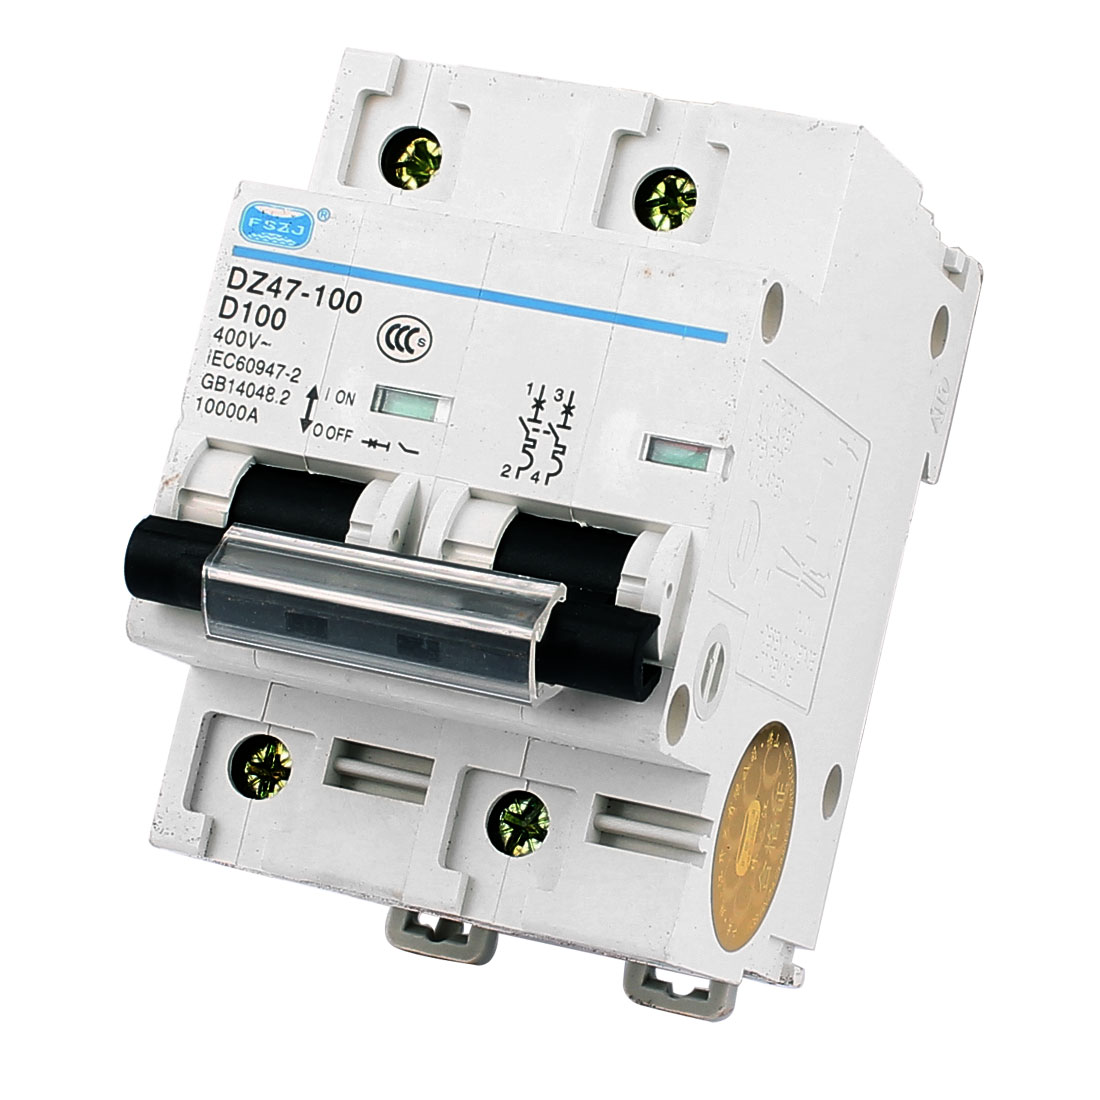 10000A Breaking Capacity 2 Pole 35mm DIN Rail Mounted Circuit Breaker AC 400V 10A DZ47-100 D100